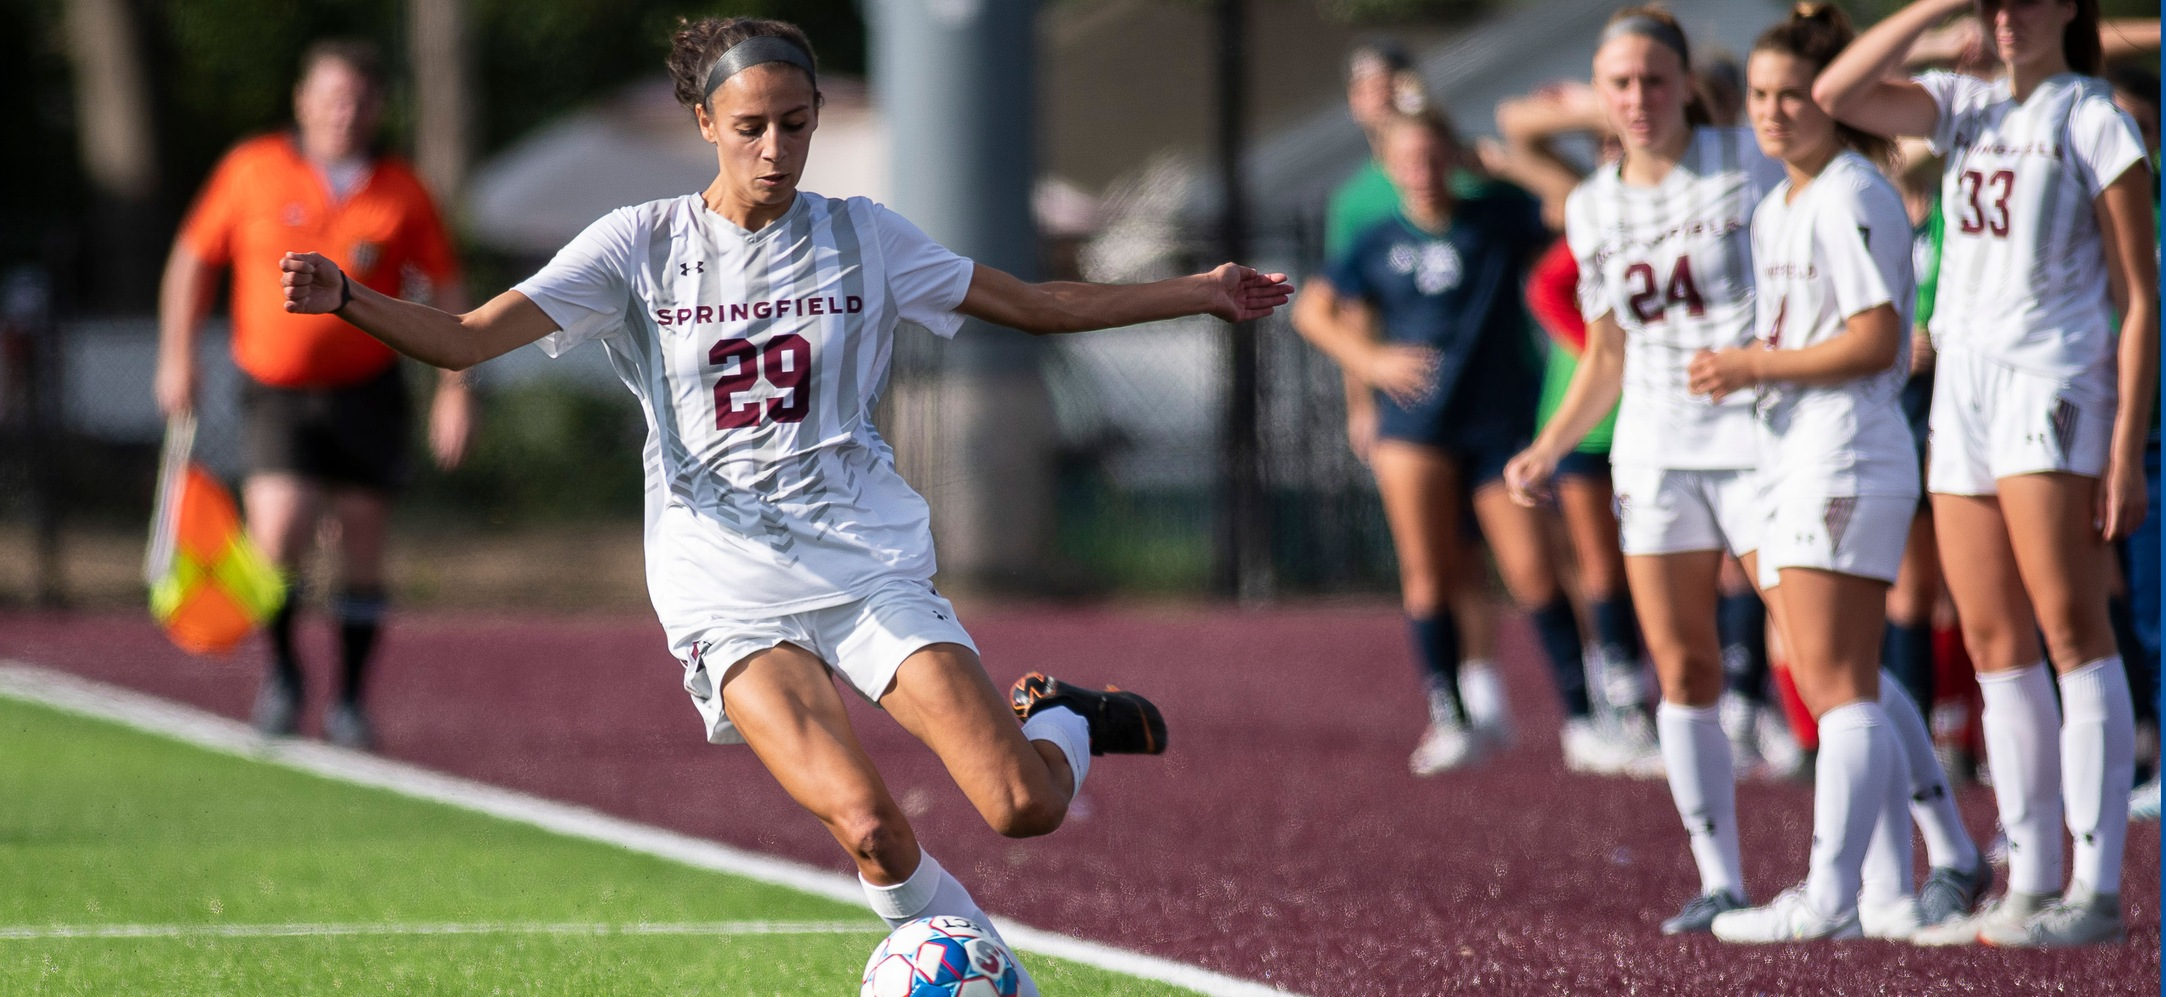 Women's Soccer Rallies for 2-1 Victory over Emerson